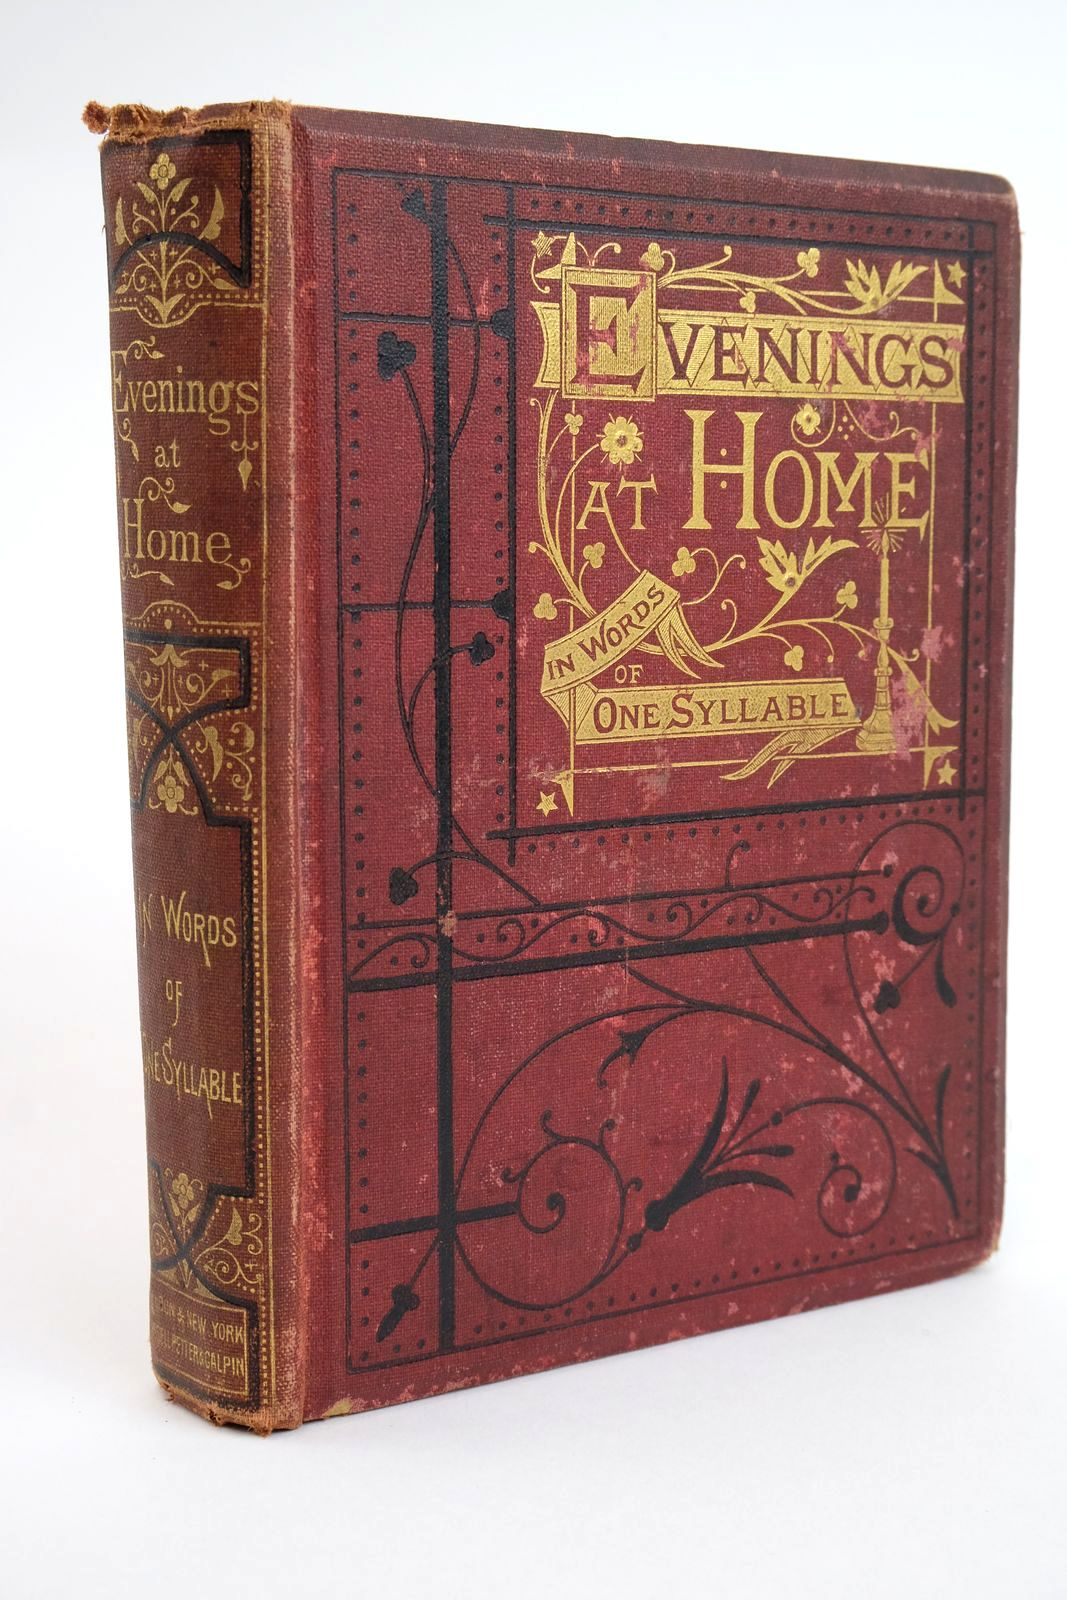 Photo of EVENINGS AT HOME IN WORDS OF ONE SYLLABLE- Stock Number: 1321664